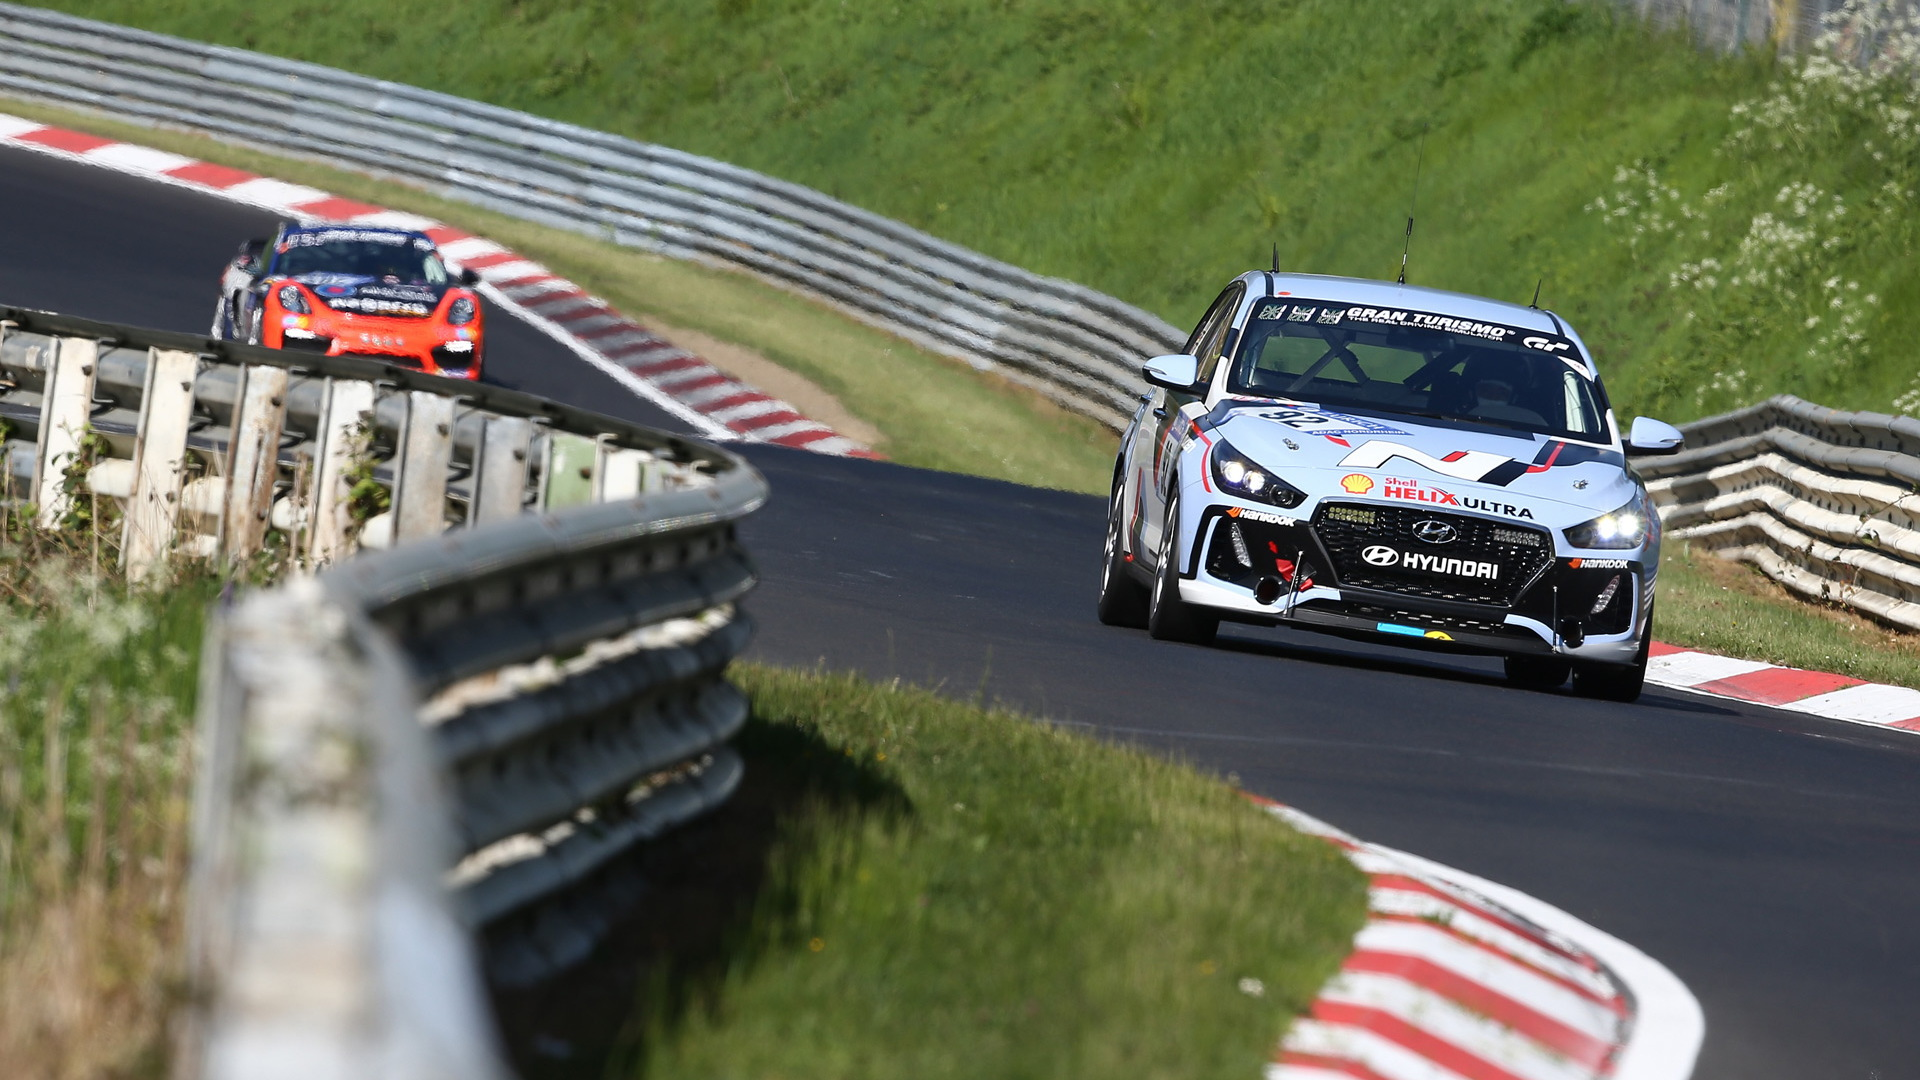 2018 Hyundai i30 N races in the 2017 24 Hours Nürburgring